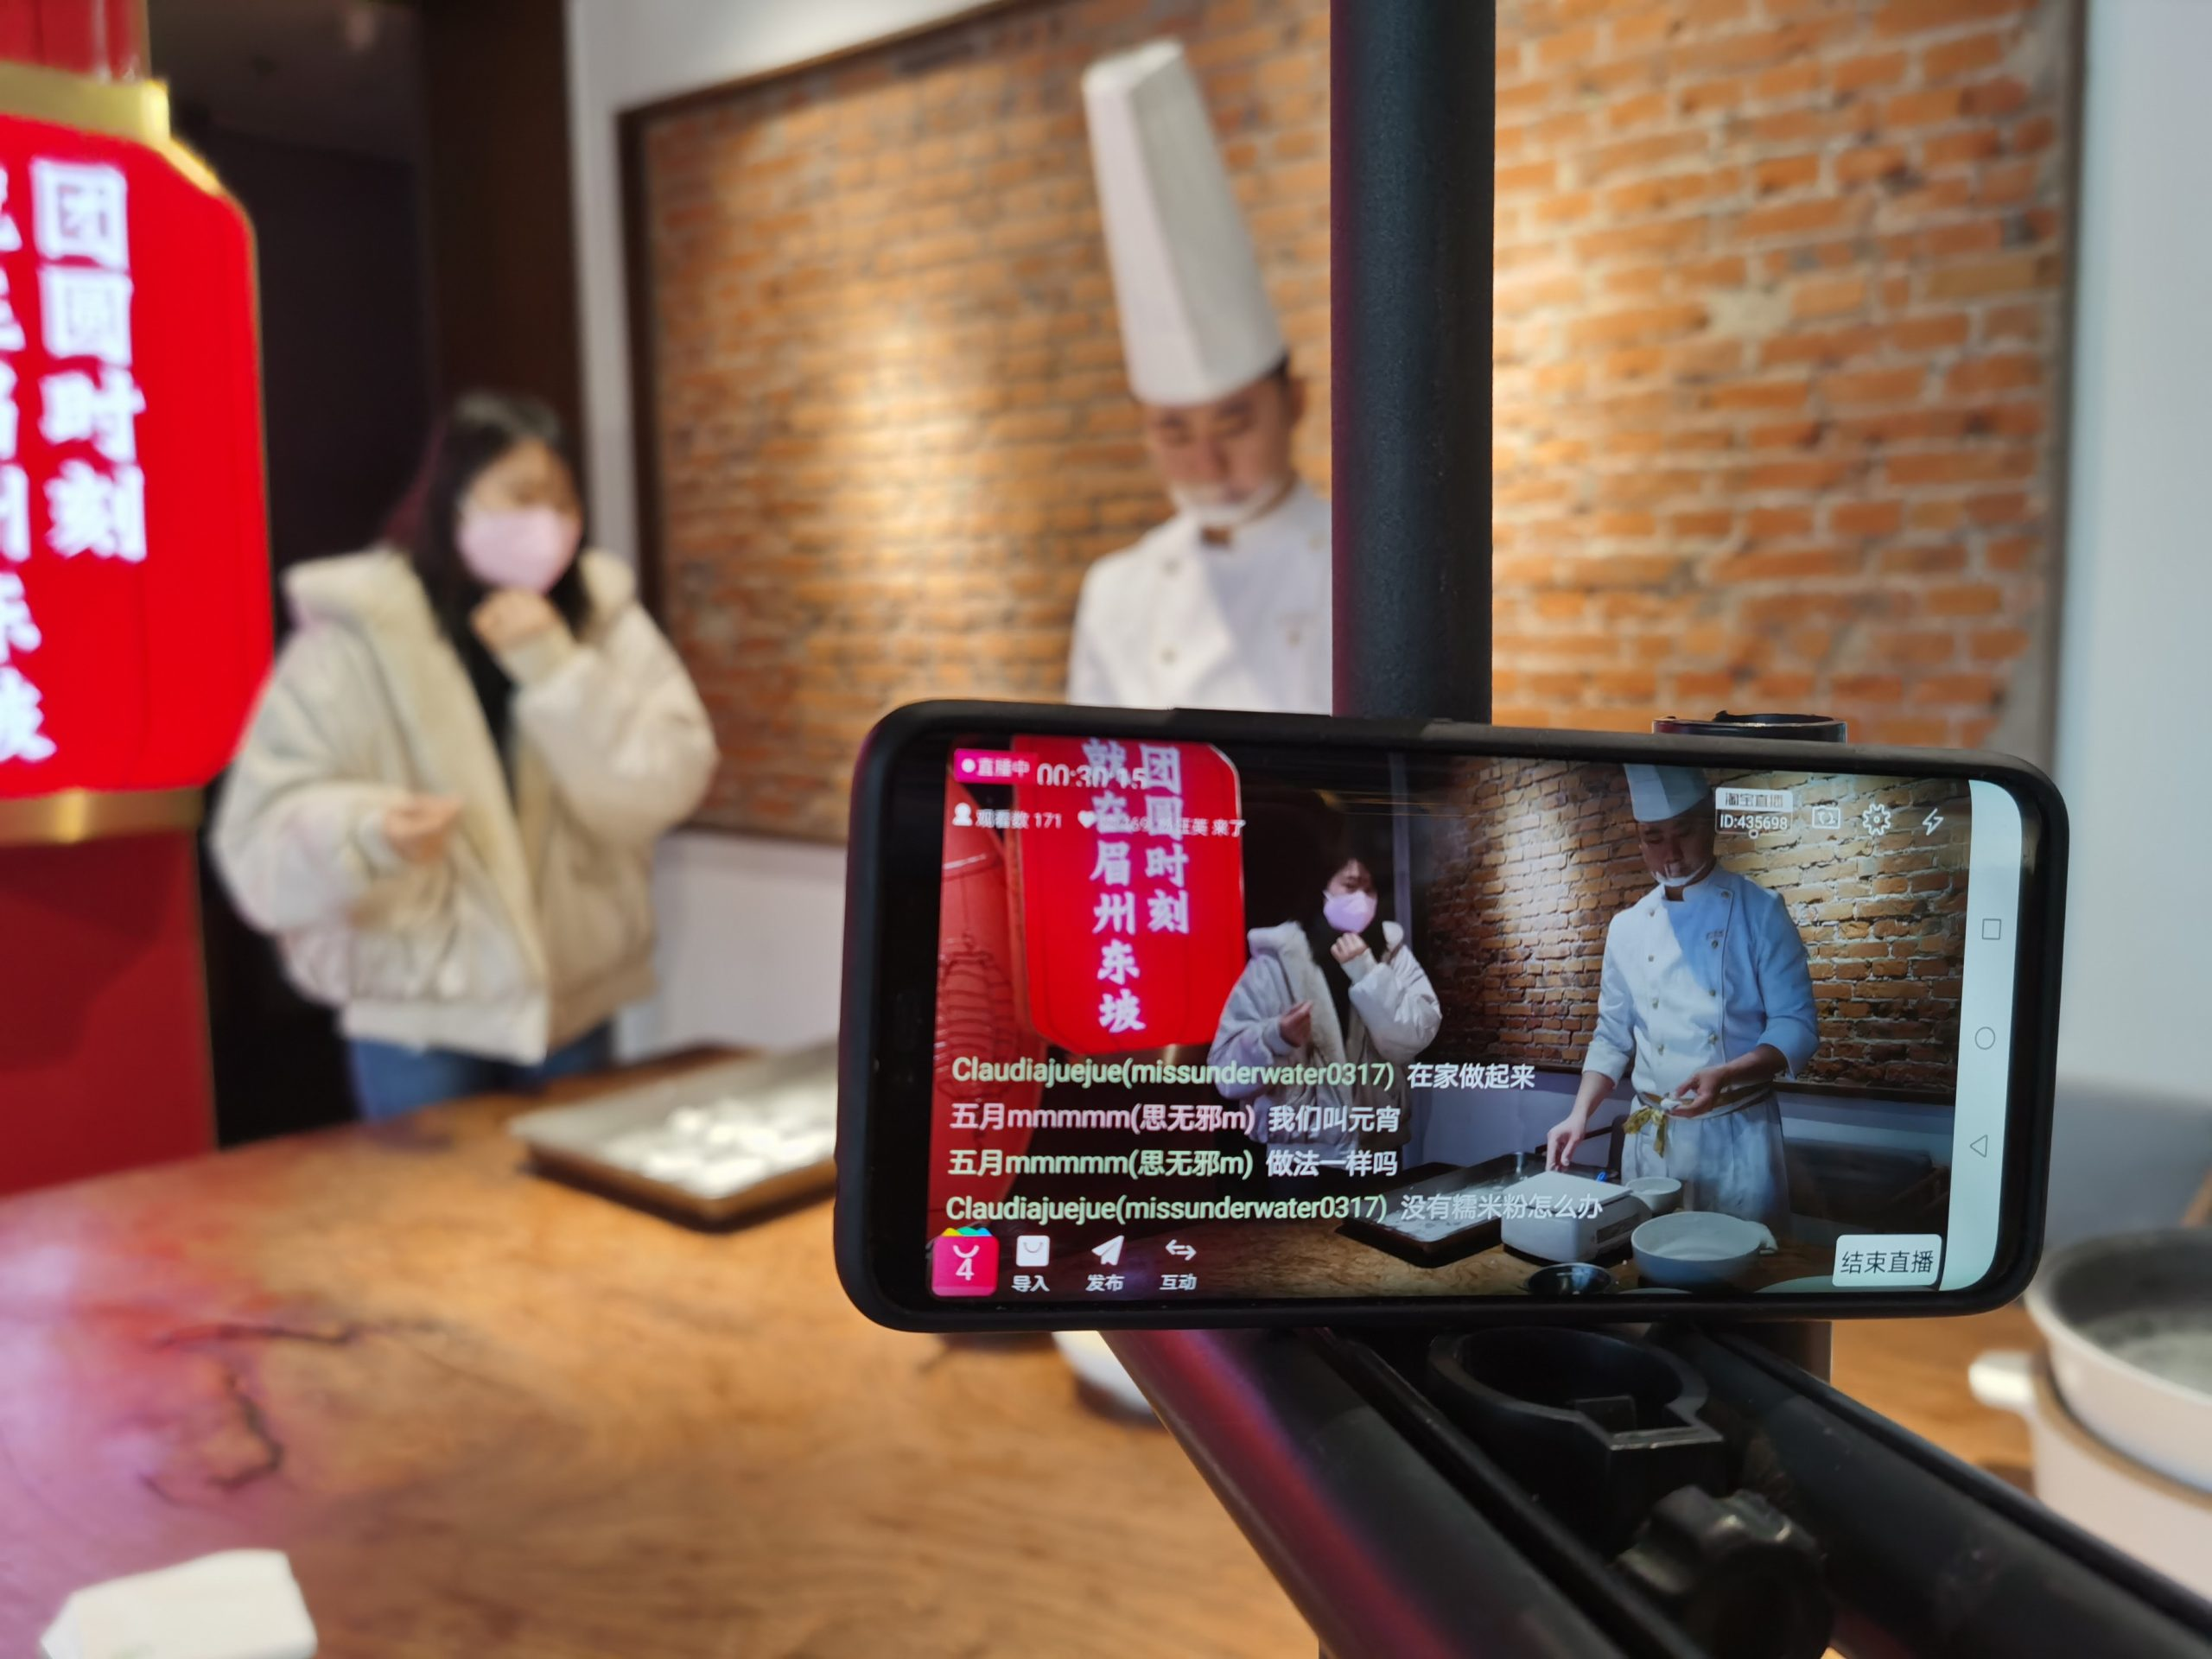 Shanghai tourism launches live-stream show to boost travel sector